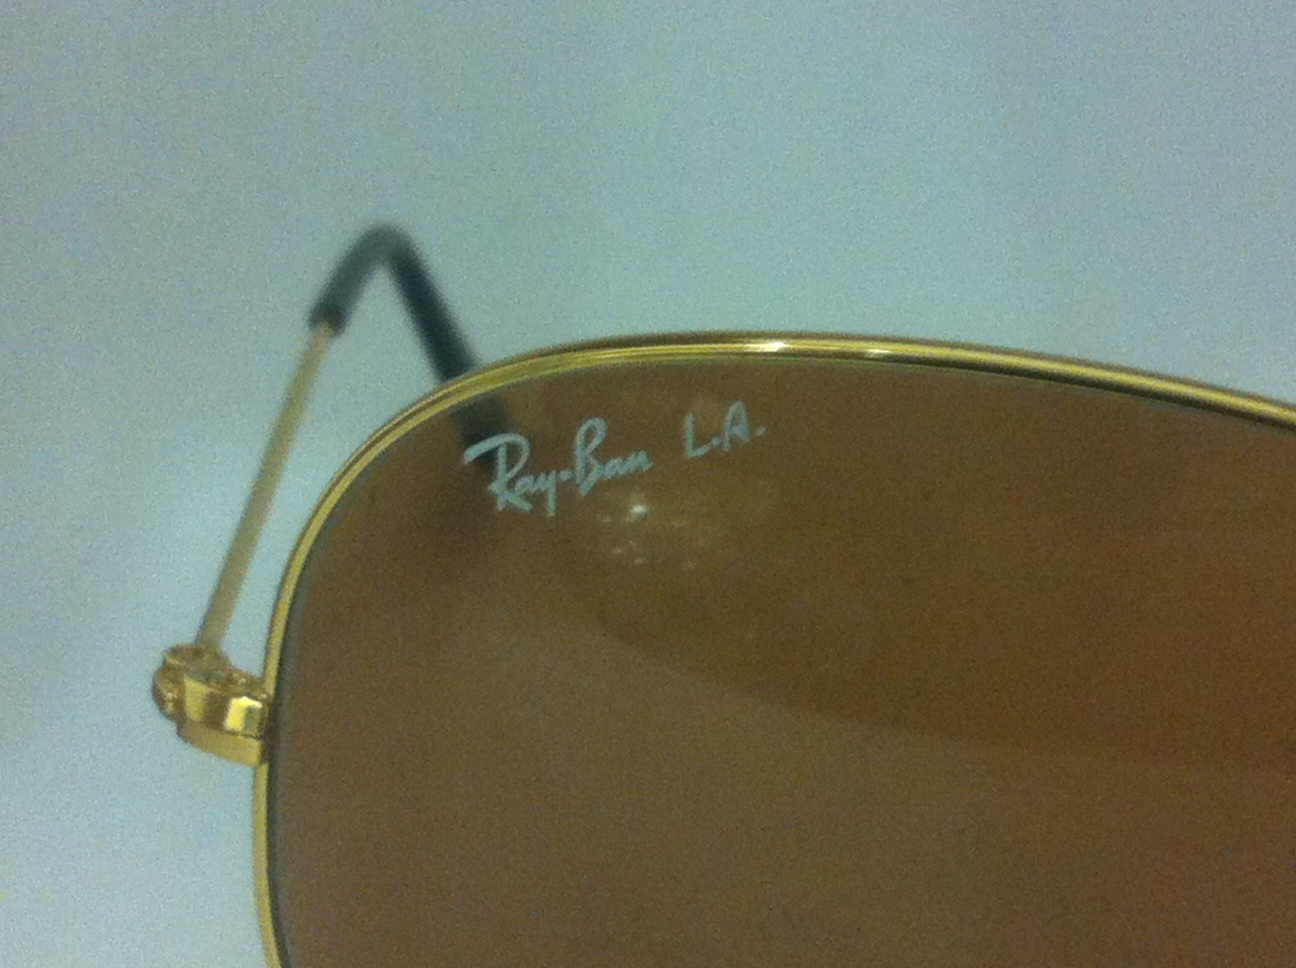 duplicate ray ban aviator sunglasses  lenskart fake rayban light adaptive lens